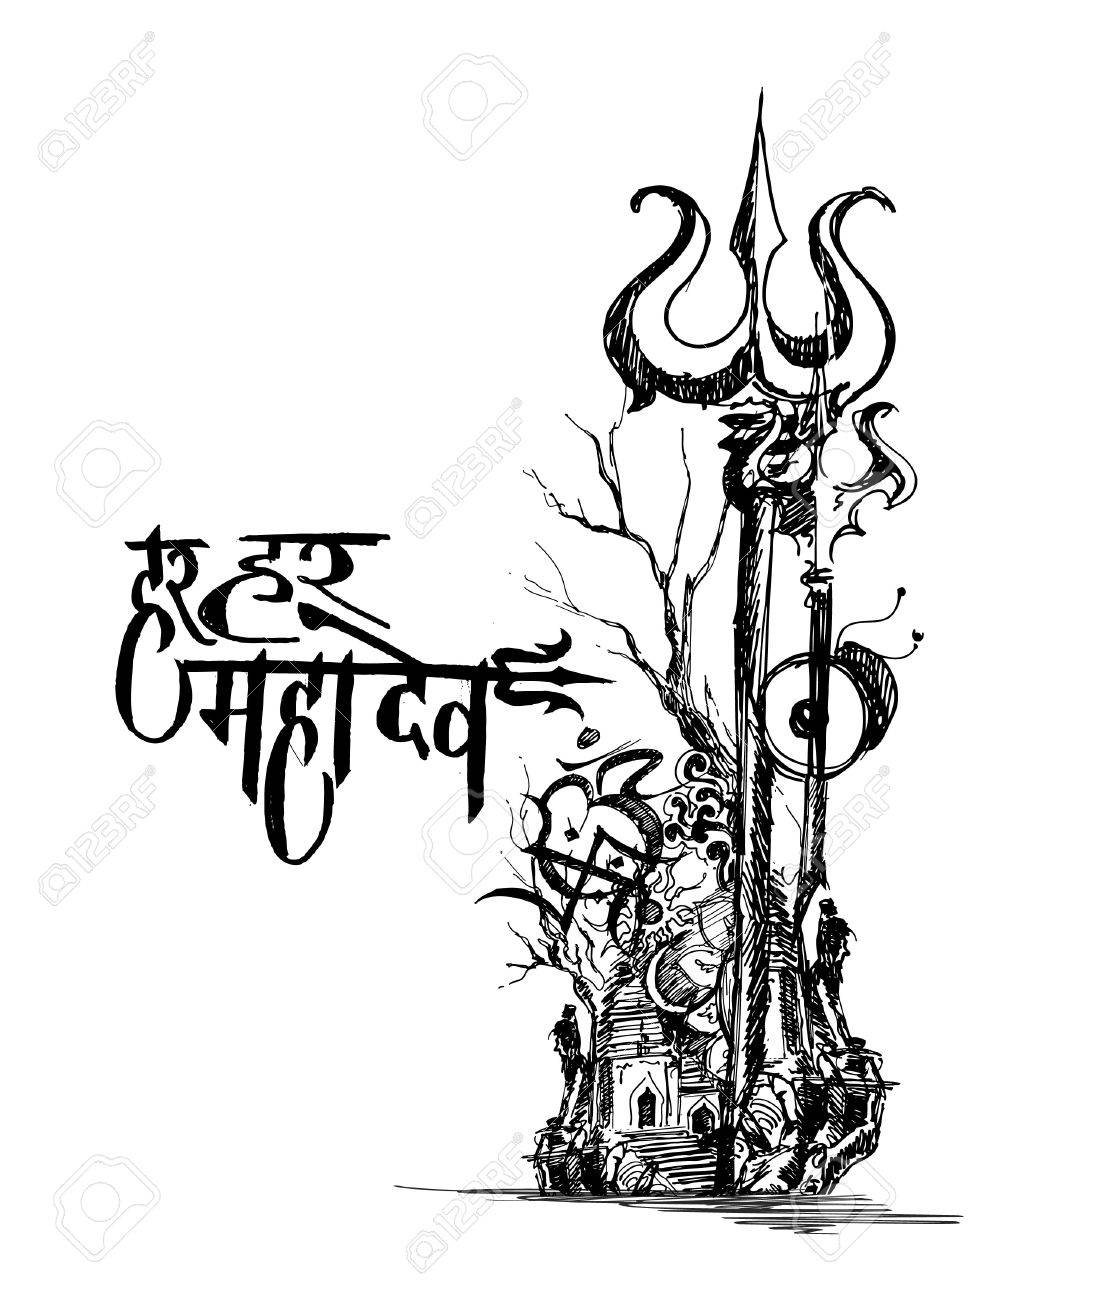 1100x1300 Illustration Of Floral Trishul For Lord Shiva Sketch, Monochrome